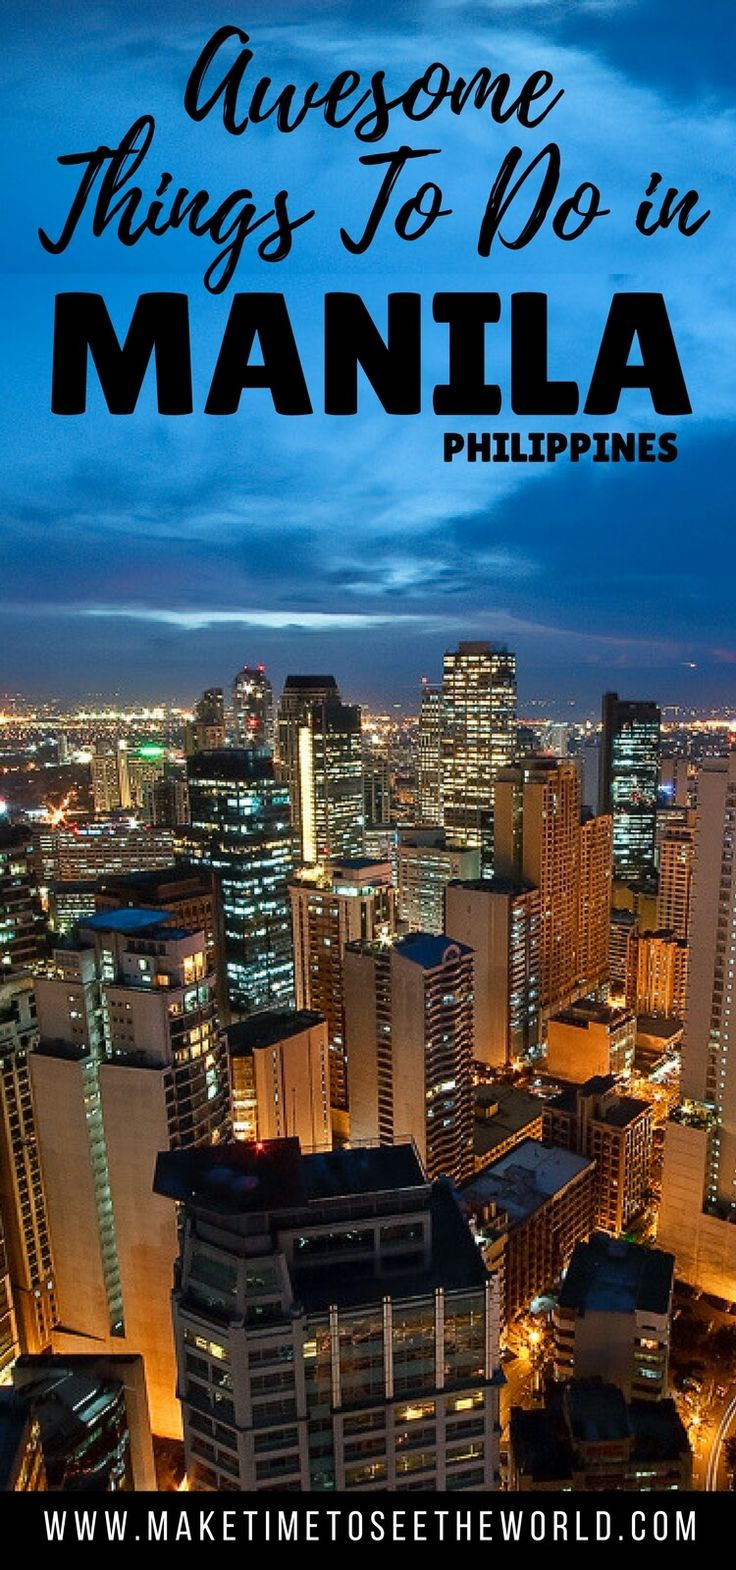 Click Through for an Incredible Travel Guide for Manila, Philippines including the best places to visit in Manila, the top things to do in Manila plus where to stay & where + what to eat! *********************************************************************************** Places to Visit in Manila | Top Things To Do in Manila | Things To Do Manila Philippines | Tourist Attractions in Manila | Tourist Spots Manila